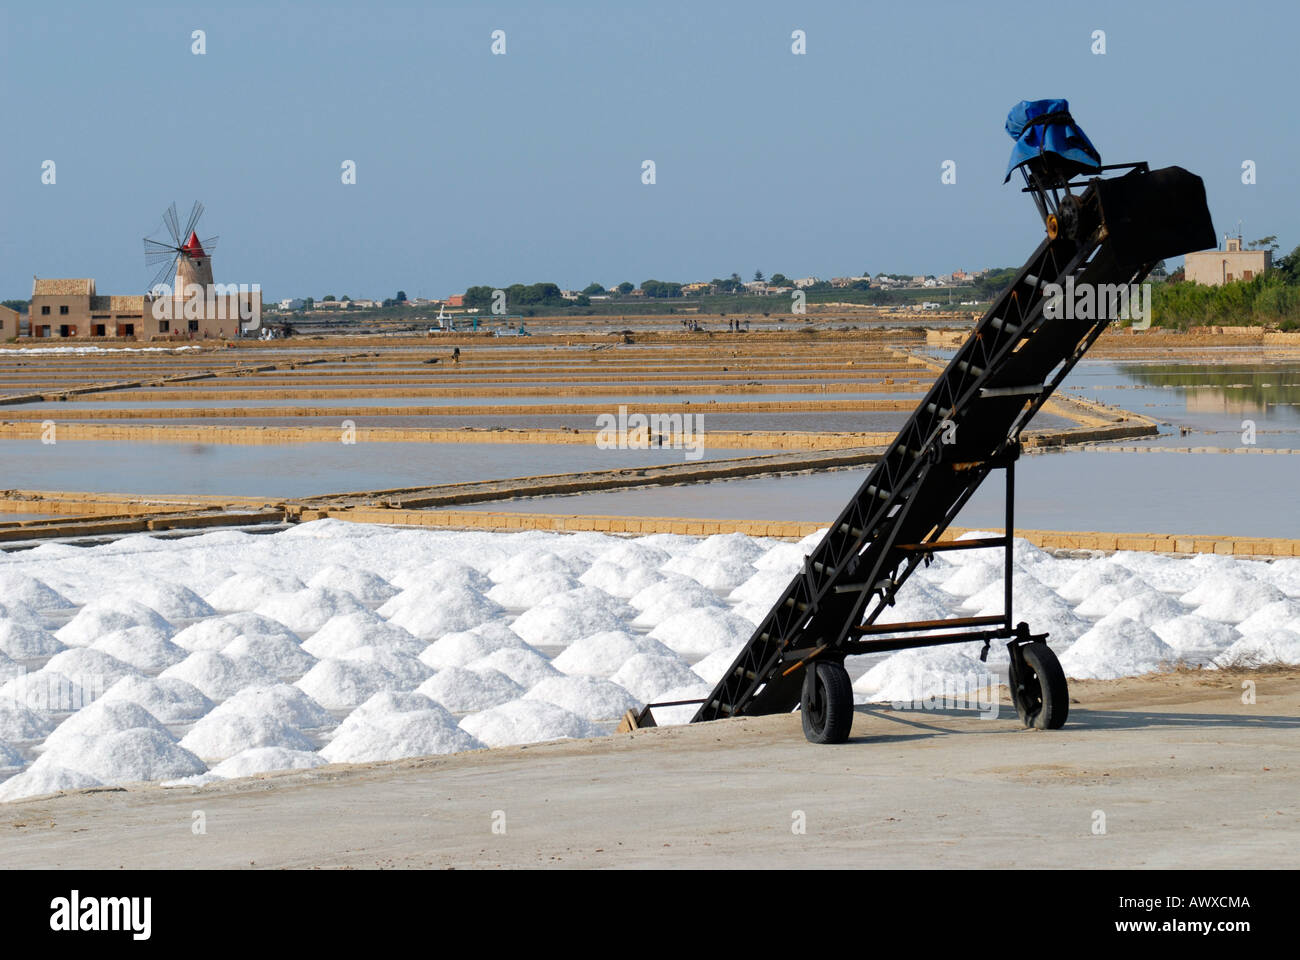 A salt conveyor belt in the saline filed of Mozia Sicily Italy - Stock Image